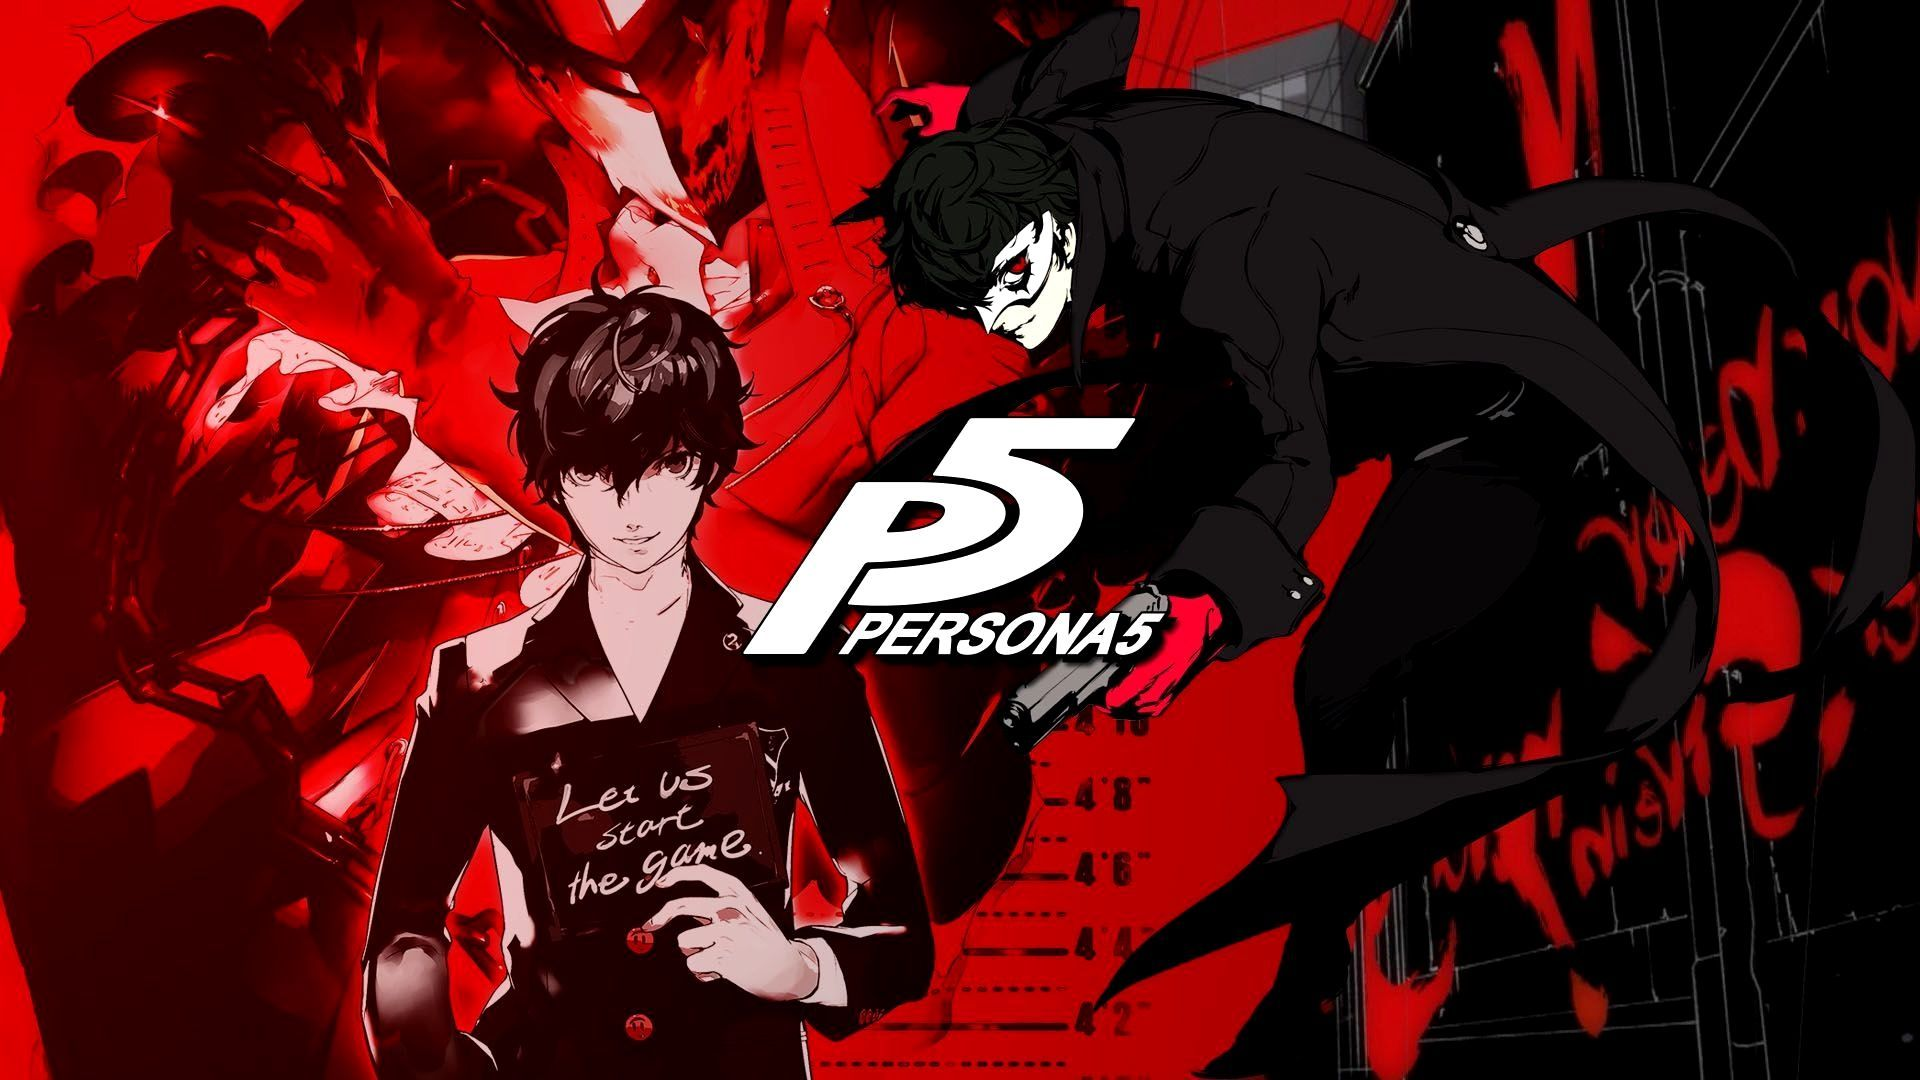 Persona 5 4k Wallpaper Reddit Ideas In 2020 Anime Wallpaper Hd Anime Wallpapers Cool Anime Wallpapers